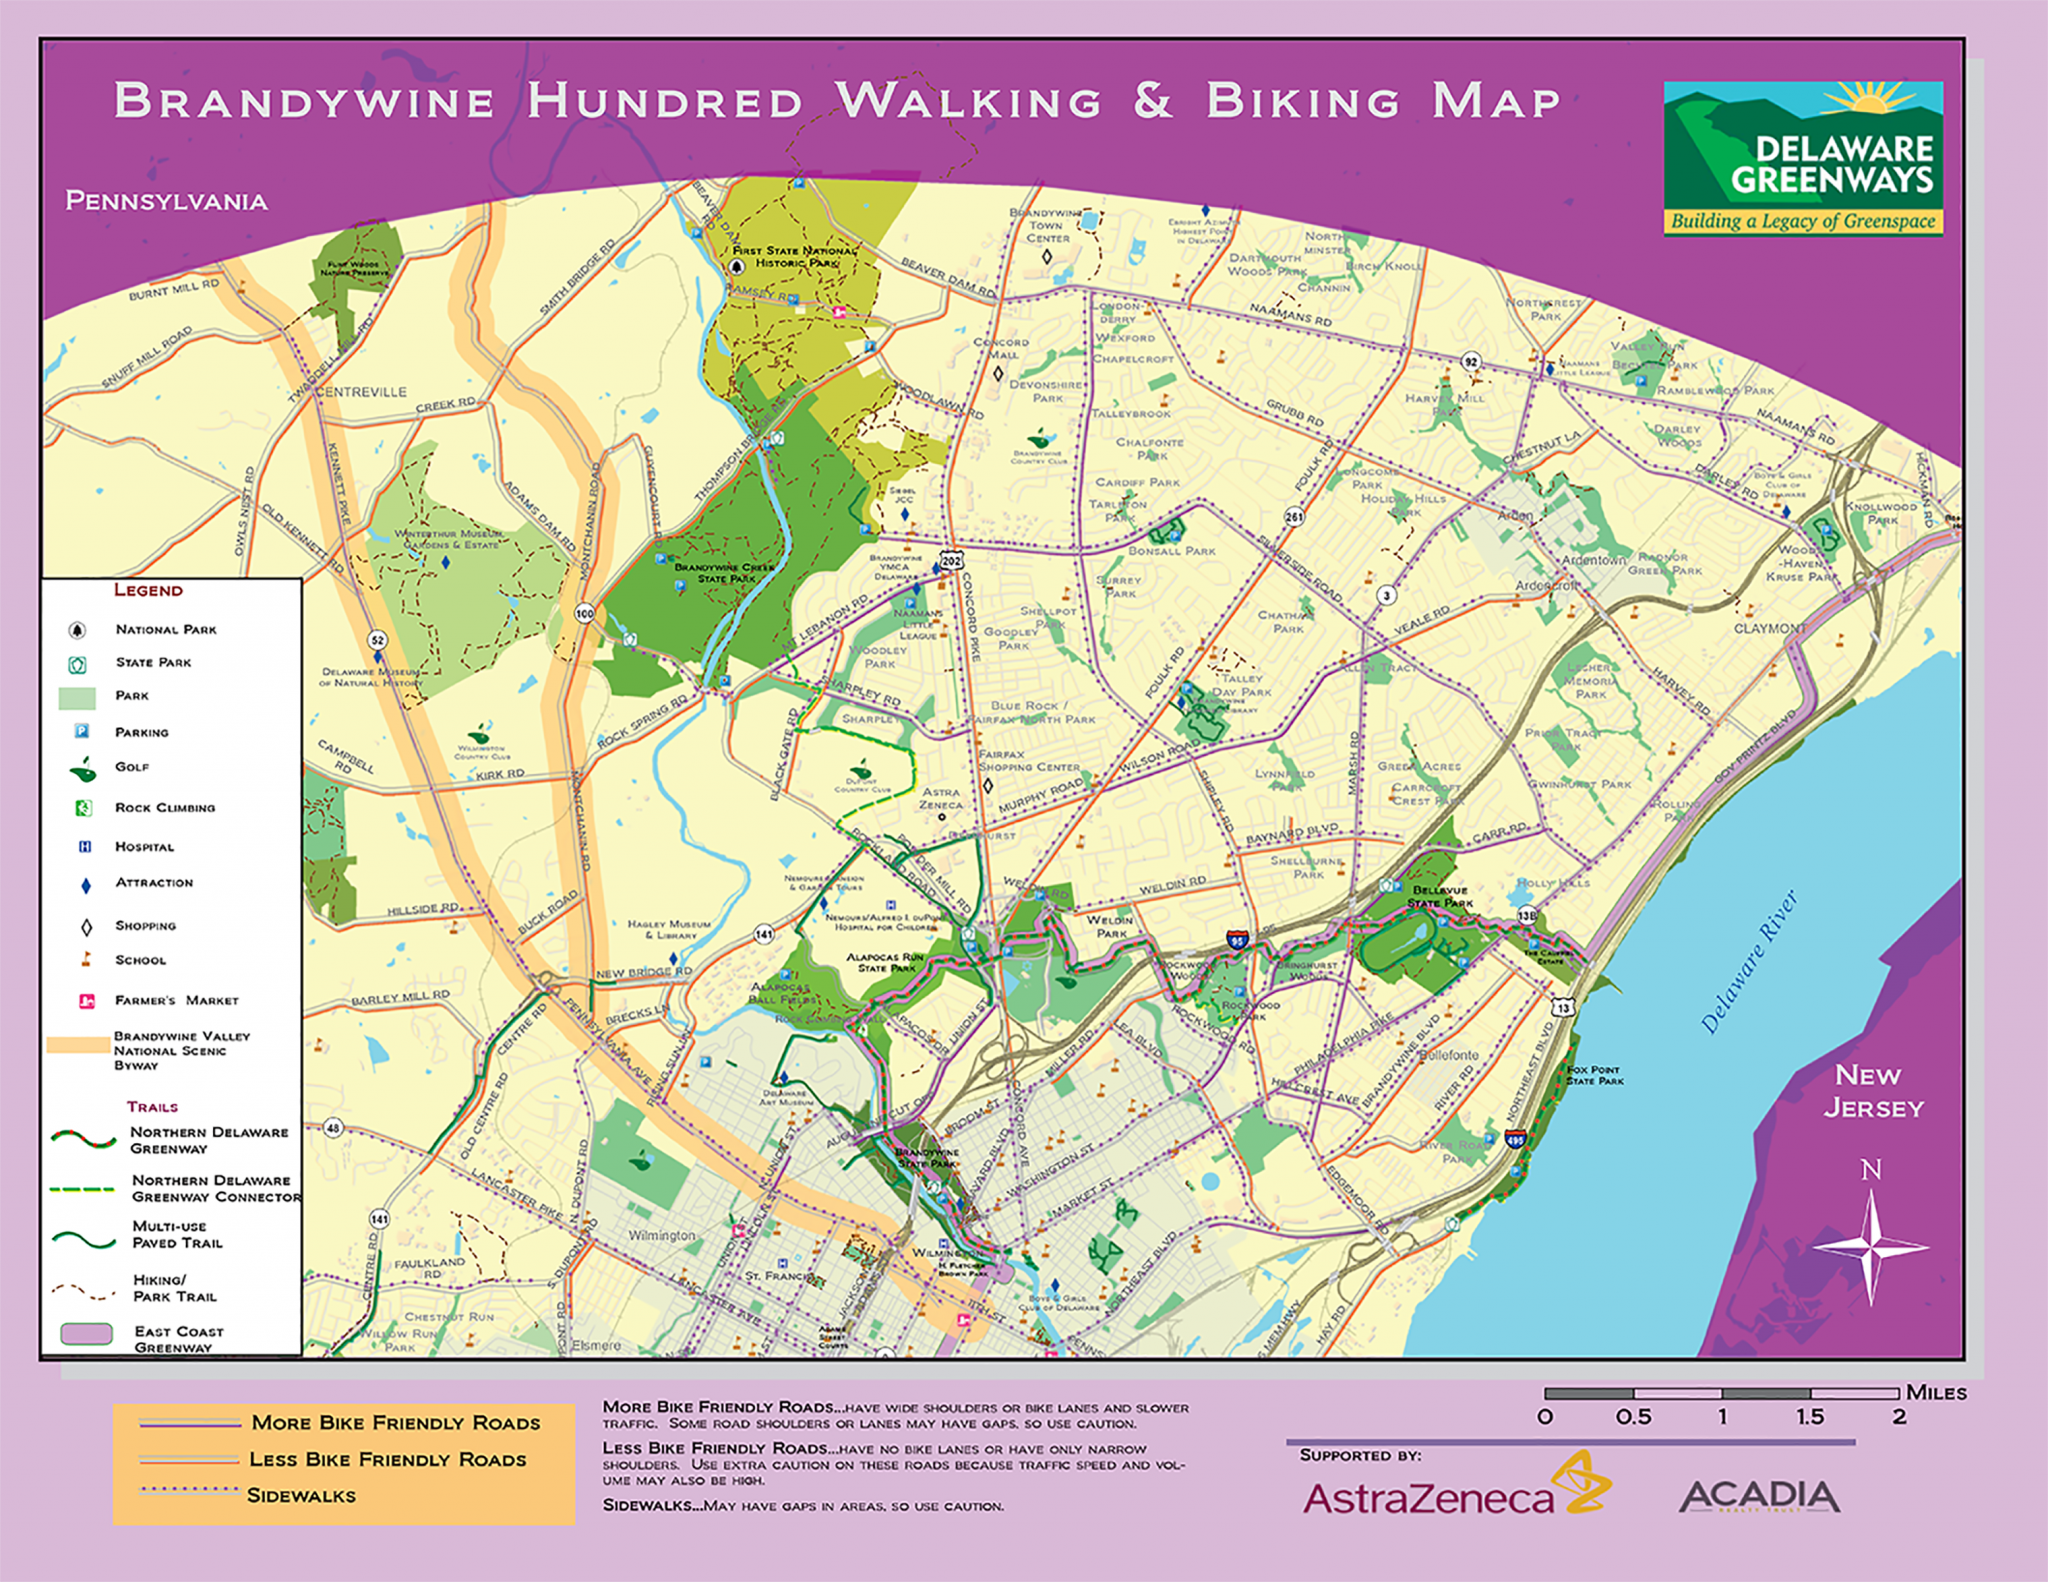 ndywine Hundred Walking Map - Delaware Greenways on